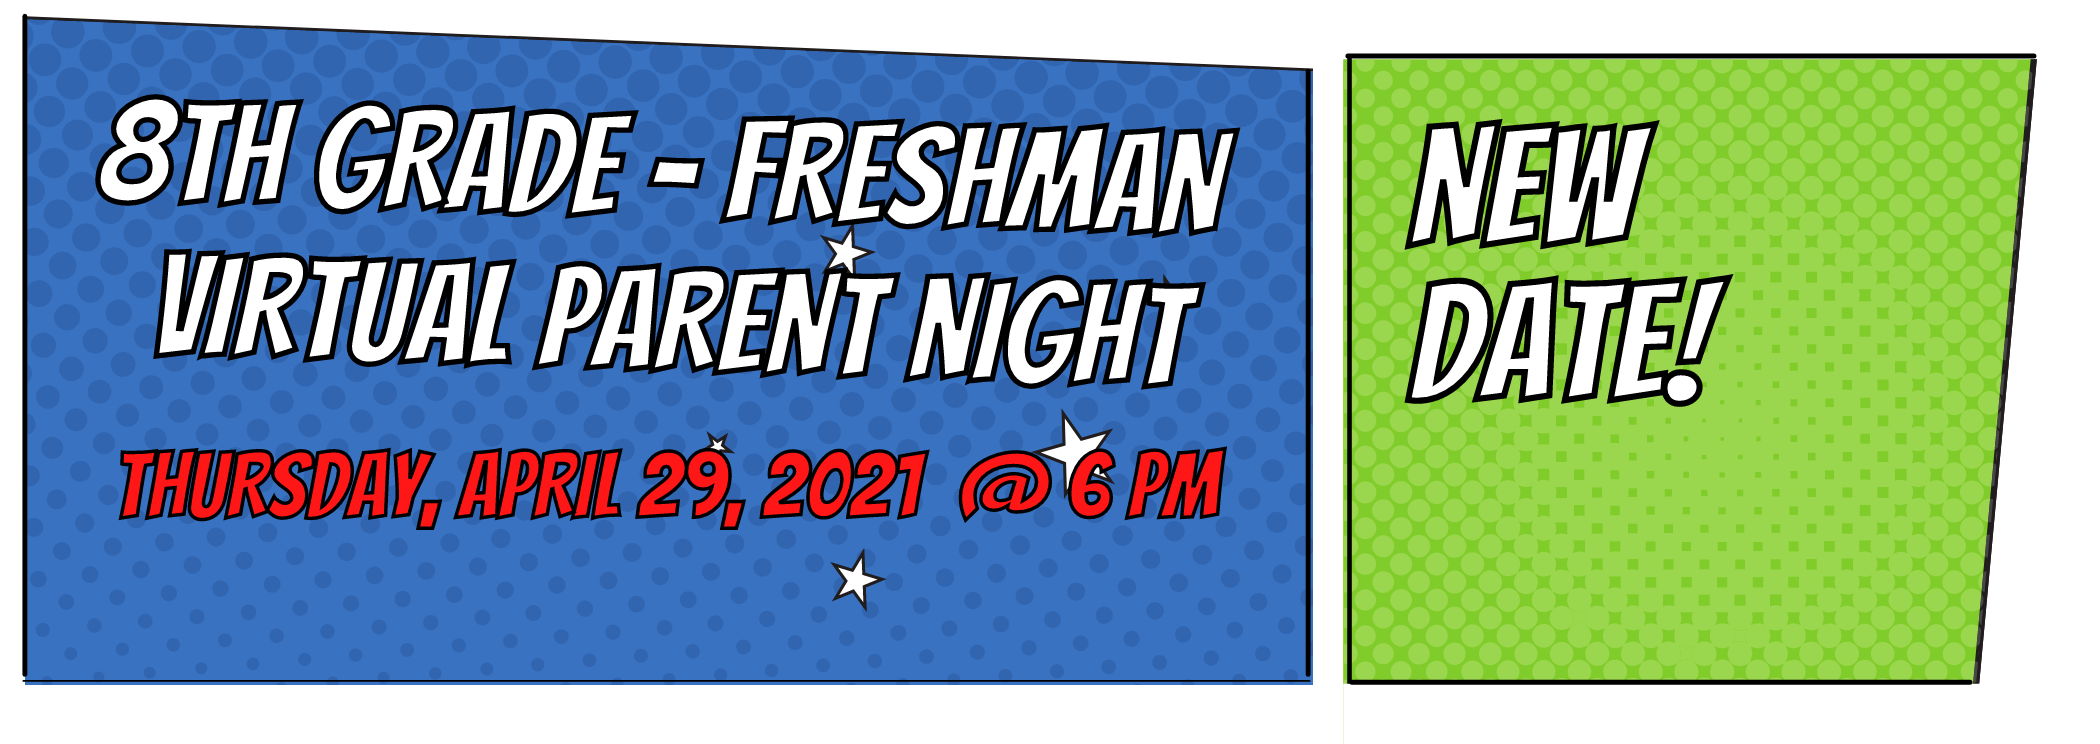 new date for 8th grade freshman virtual parent night thursday april 29, 2021 at 6 pm